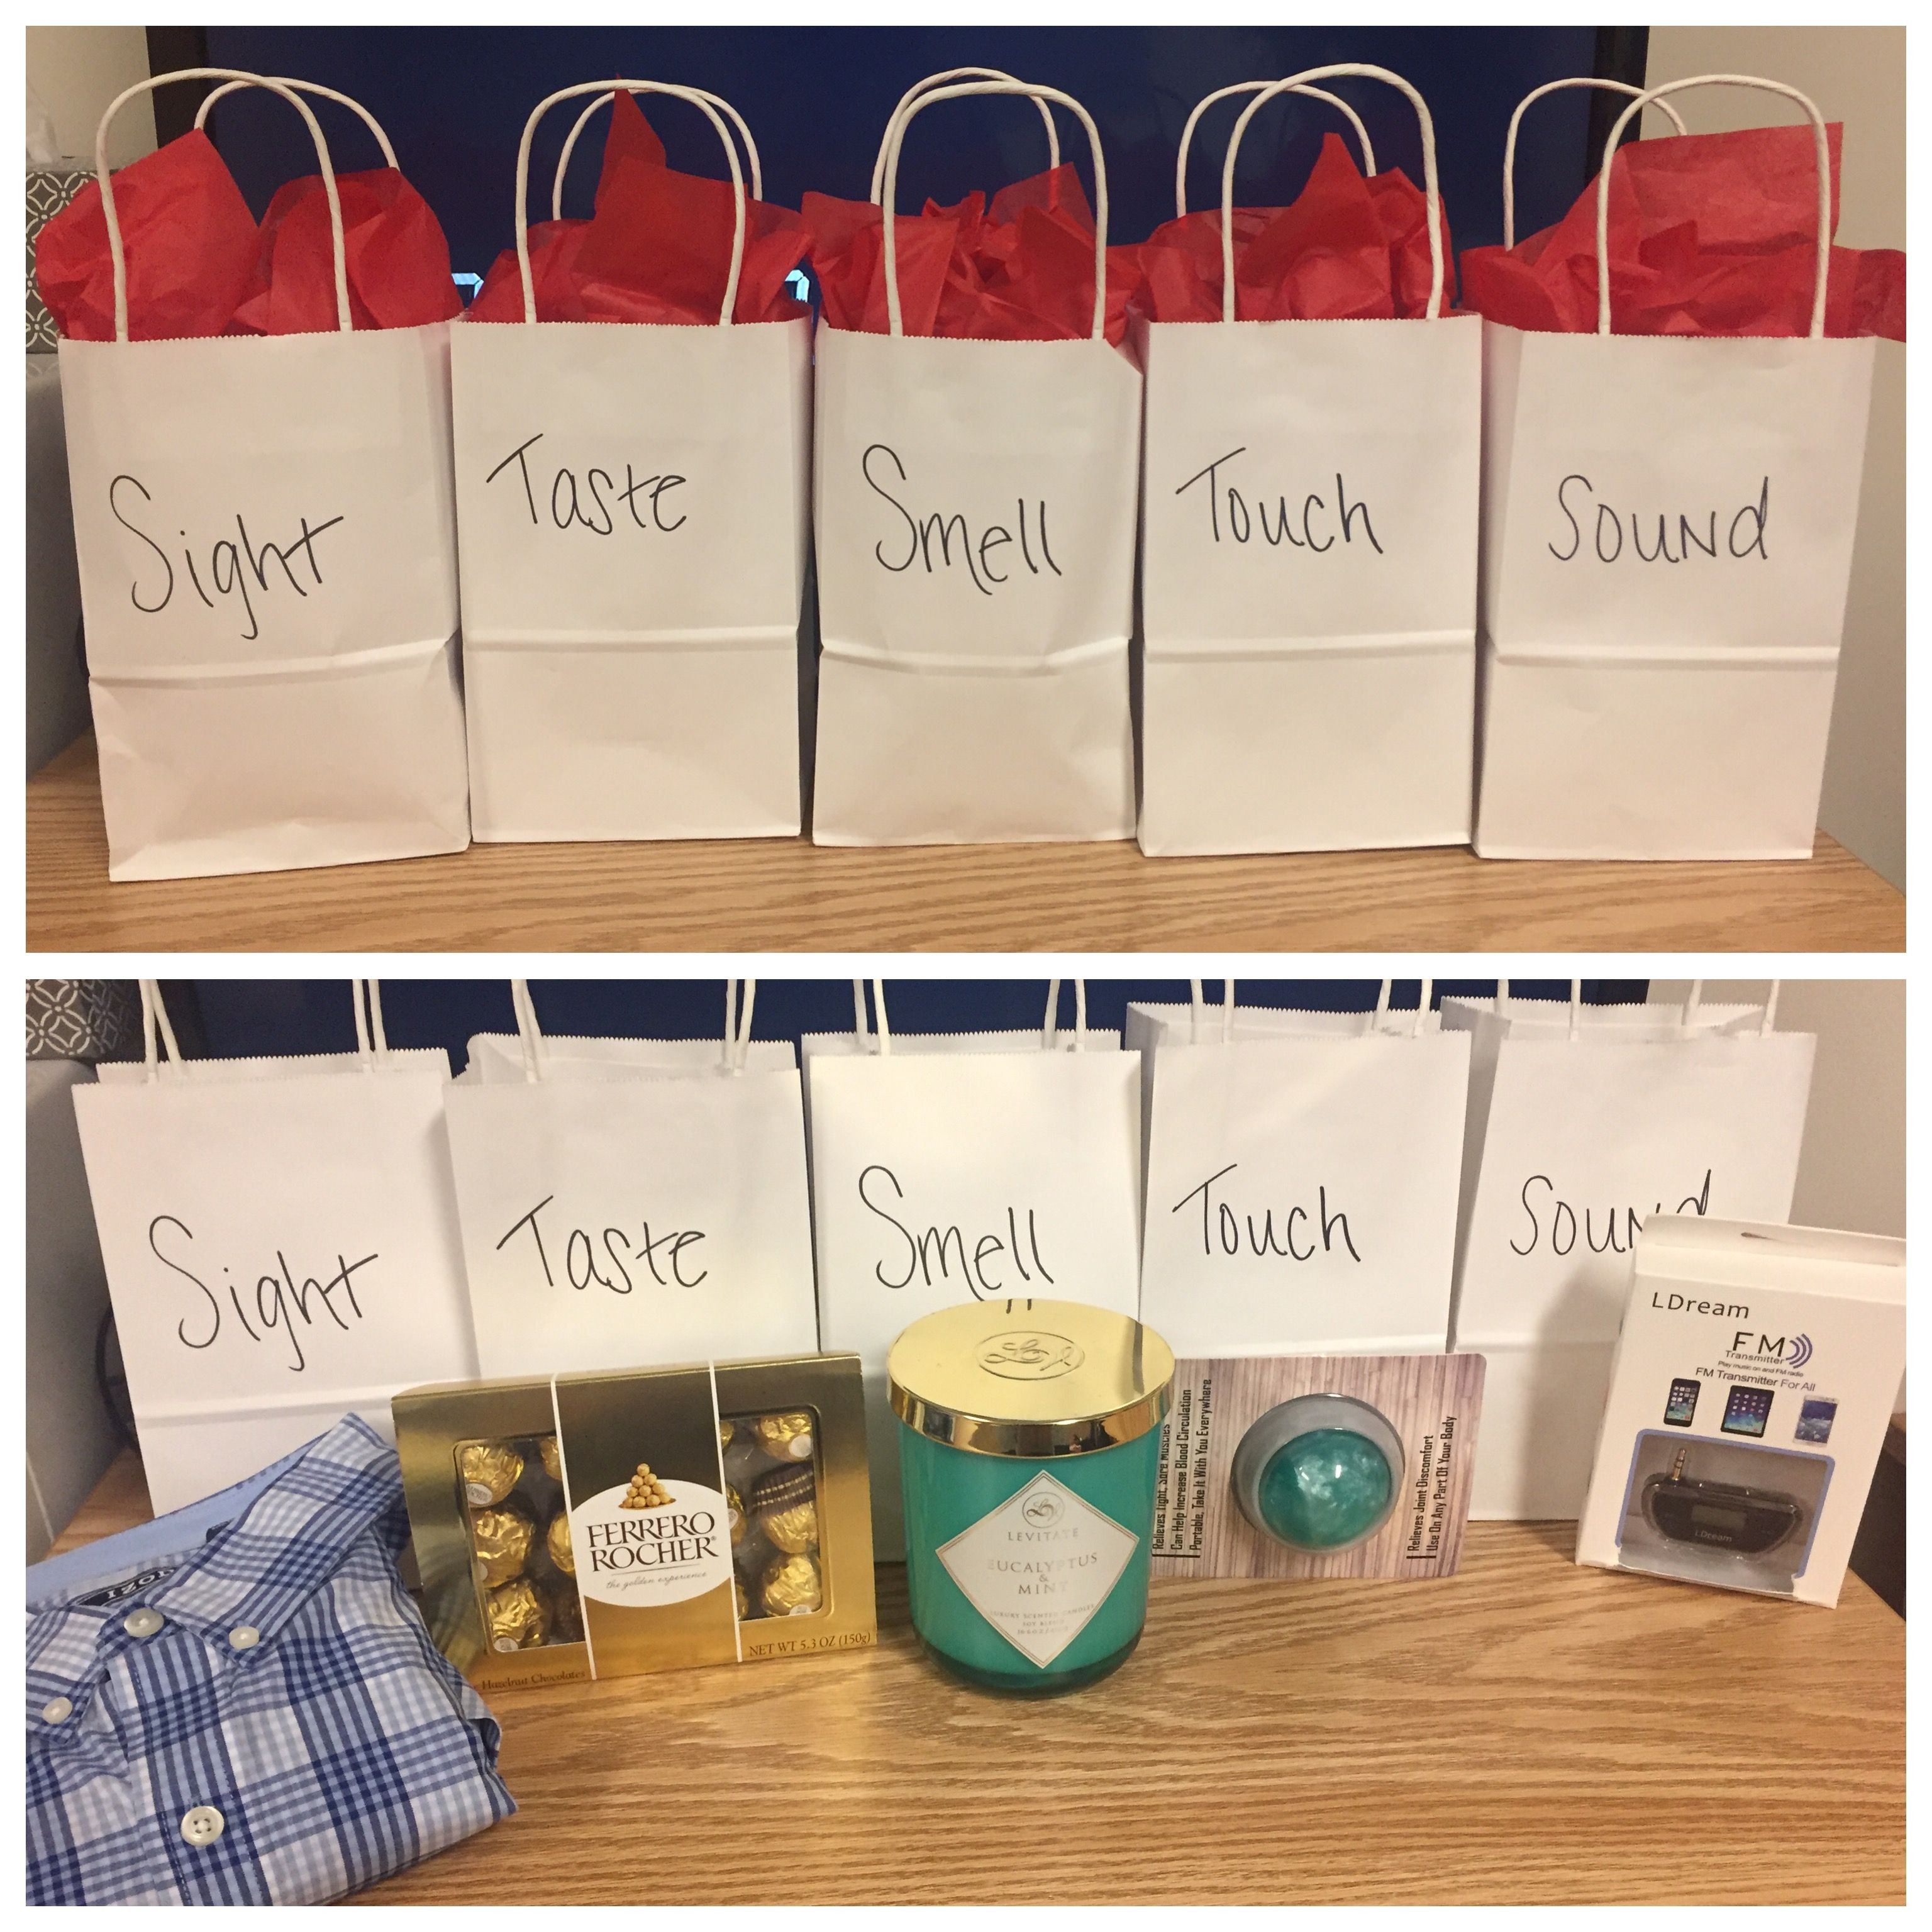 Best ideas about Boyfriend Gift Ideas Pinterest . Save or Pin 5 Senses Gift For Him Valentines 5Senses Now.